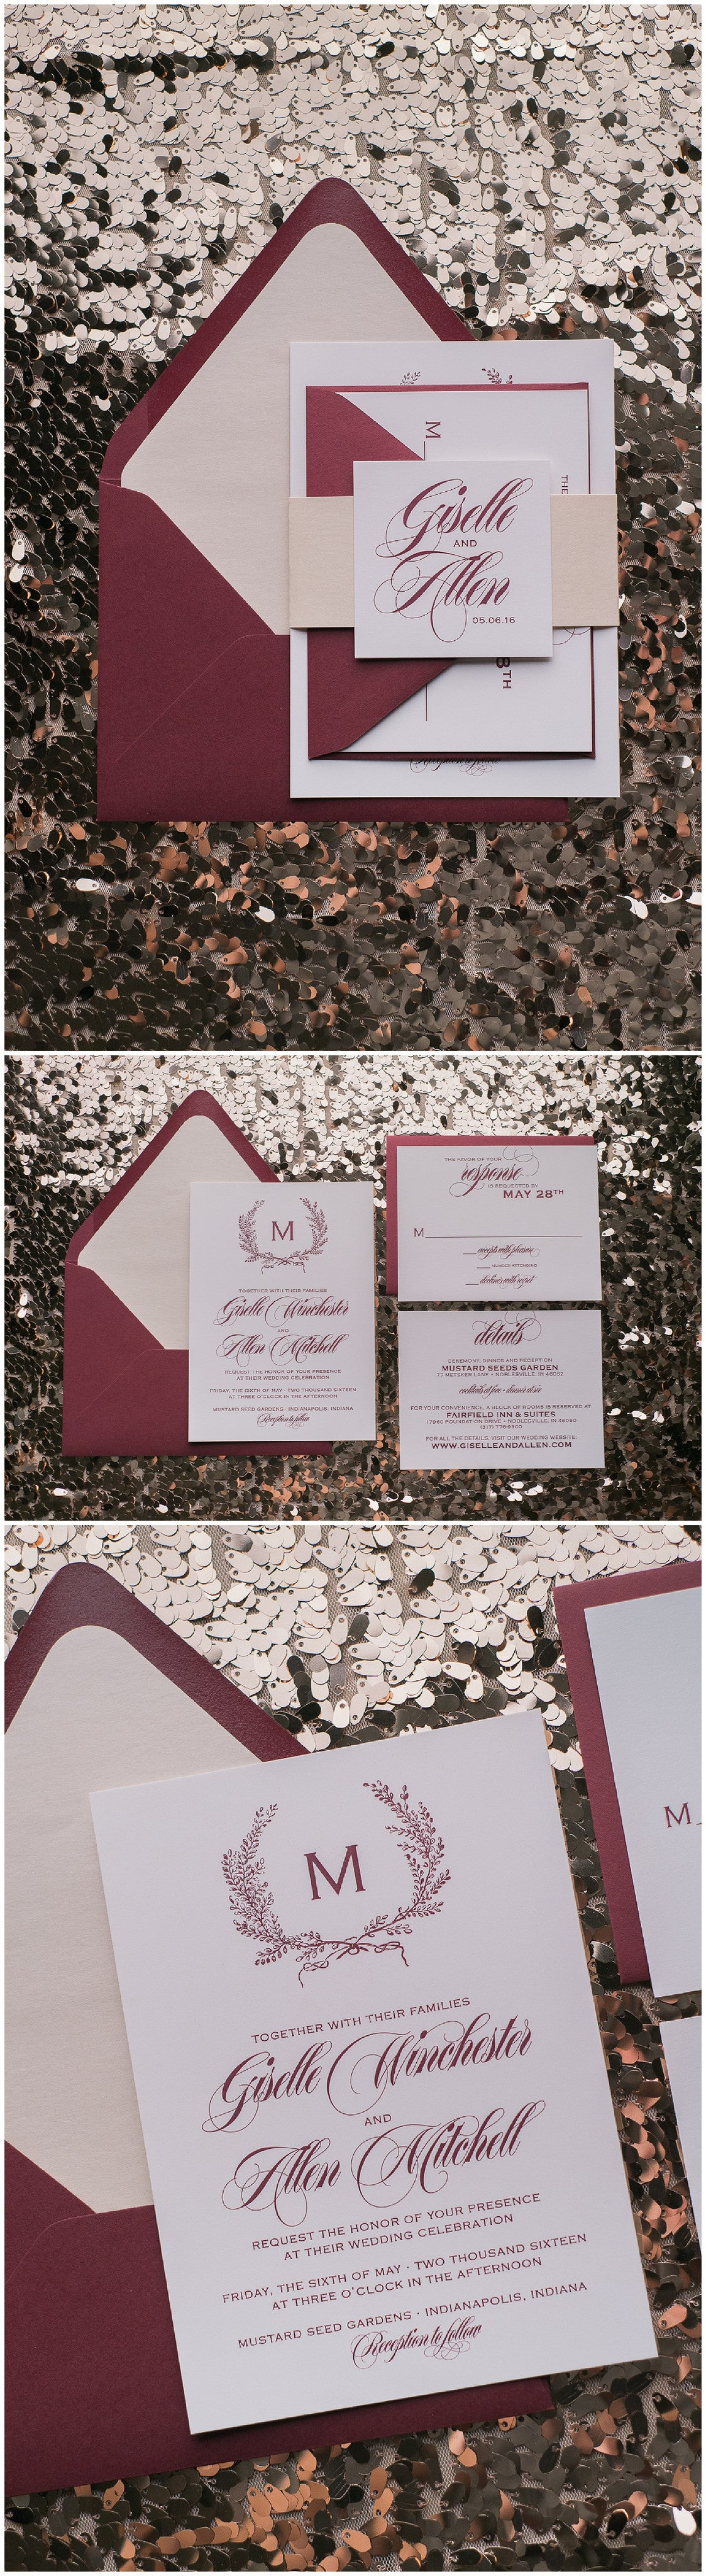 Wedding Invitations, Blush and Wine, Burgundy, Digital Printing, Affordable Wedding Invitations, Giselle Suite, Just Invite Me